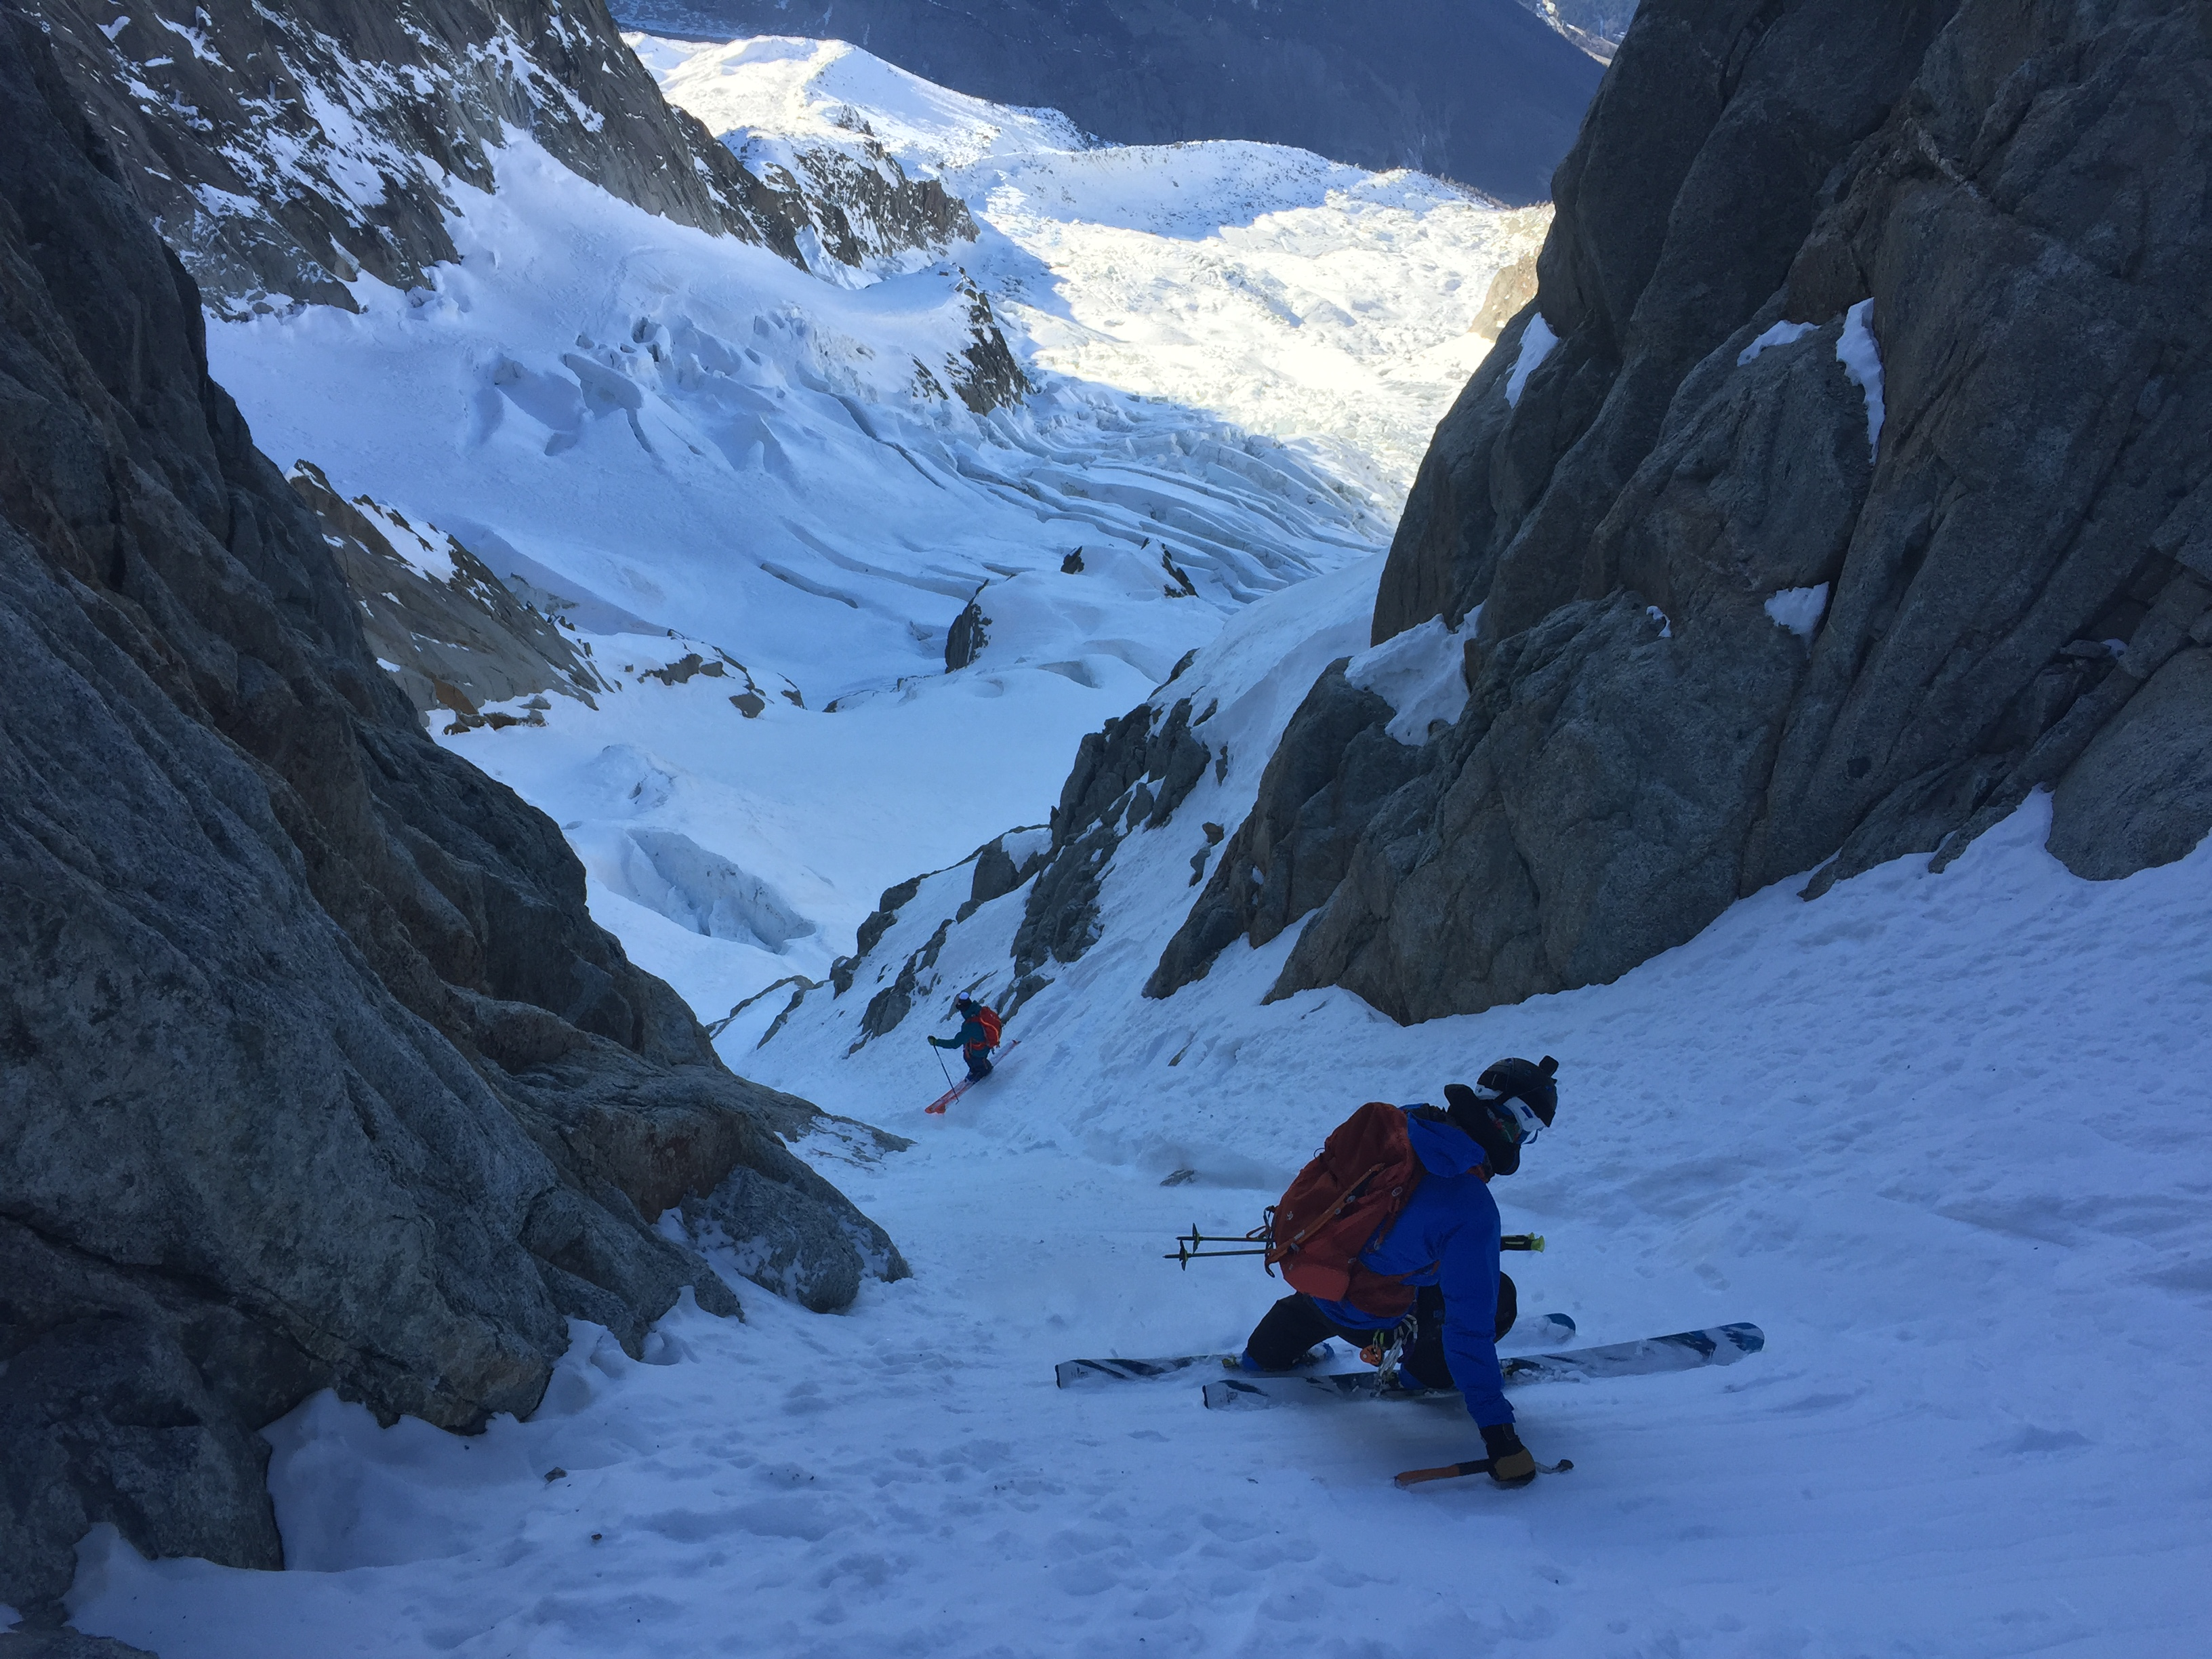 Jesper Petersson and Joel Evans skiing the lower section of the Frigor Couloir. Photo: Pete Houghton